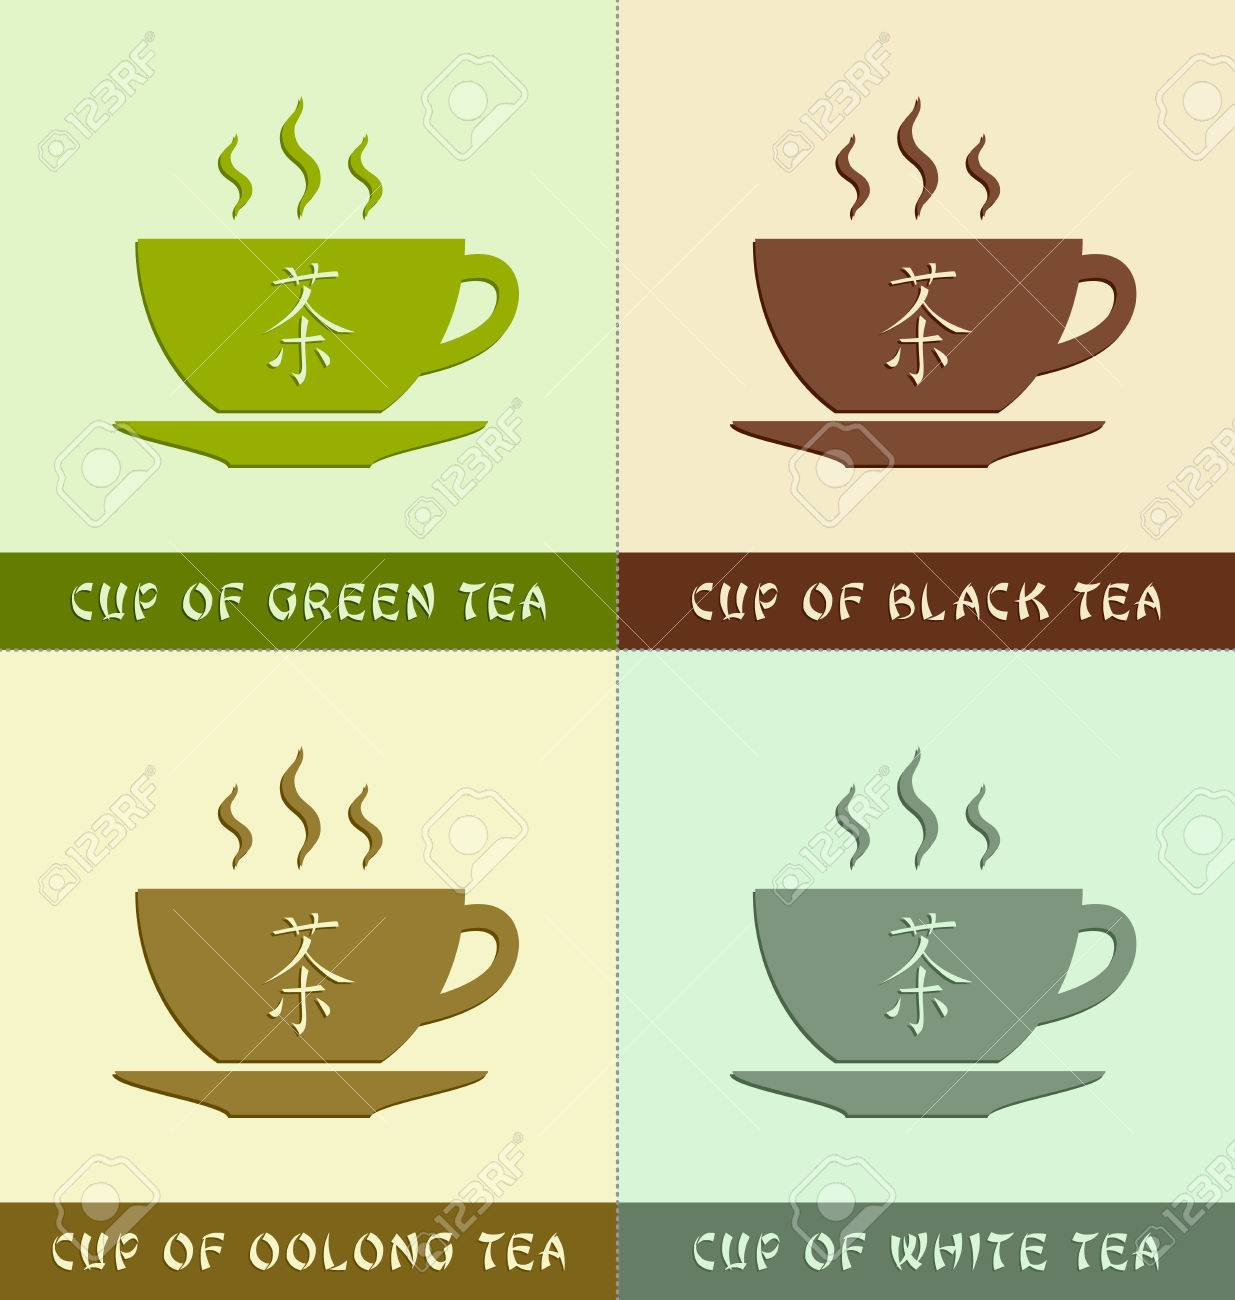 Cups Of Different Types Of Teas With Chinese Symbol That Means